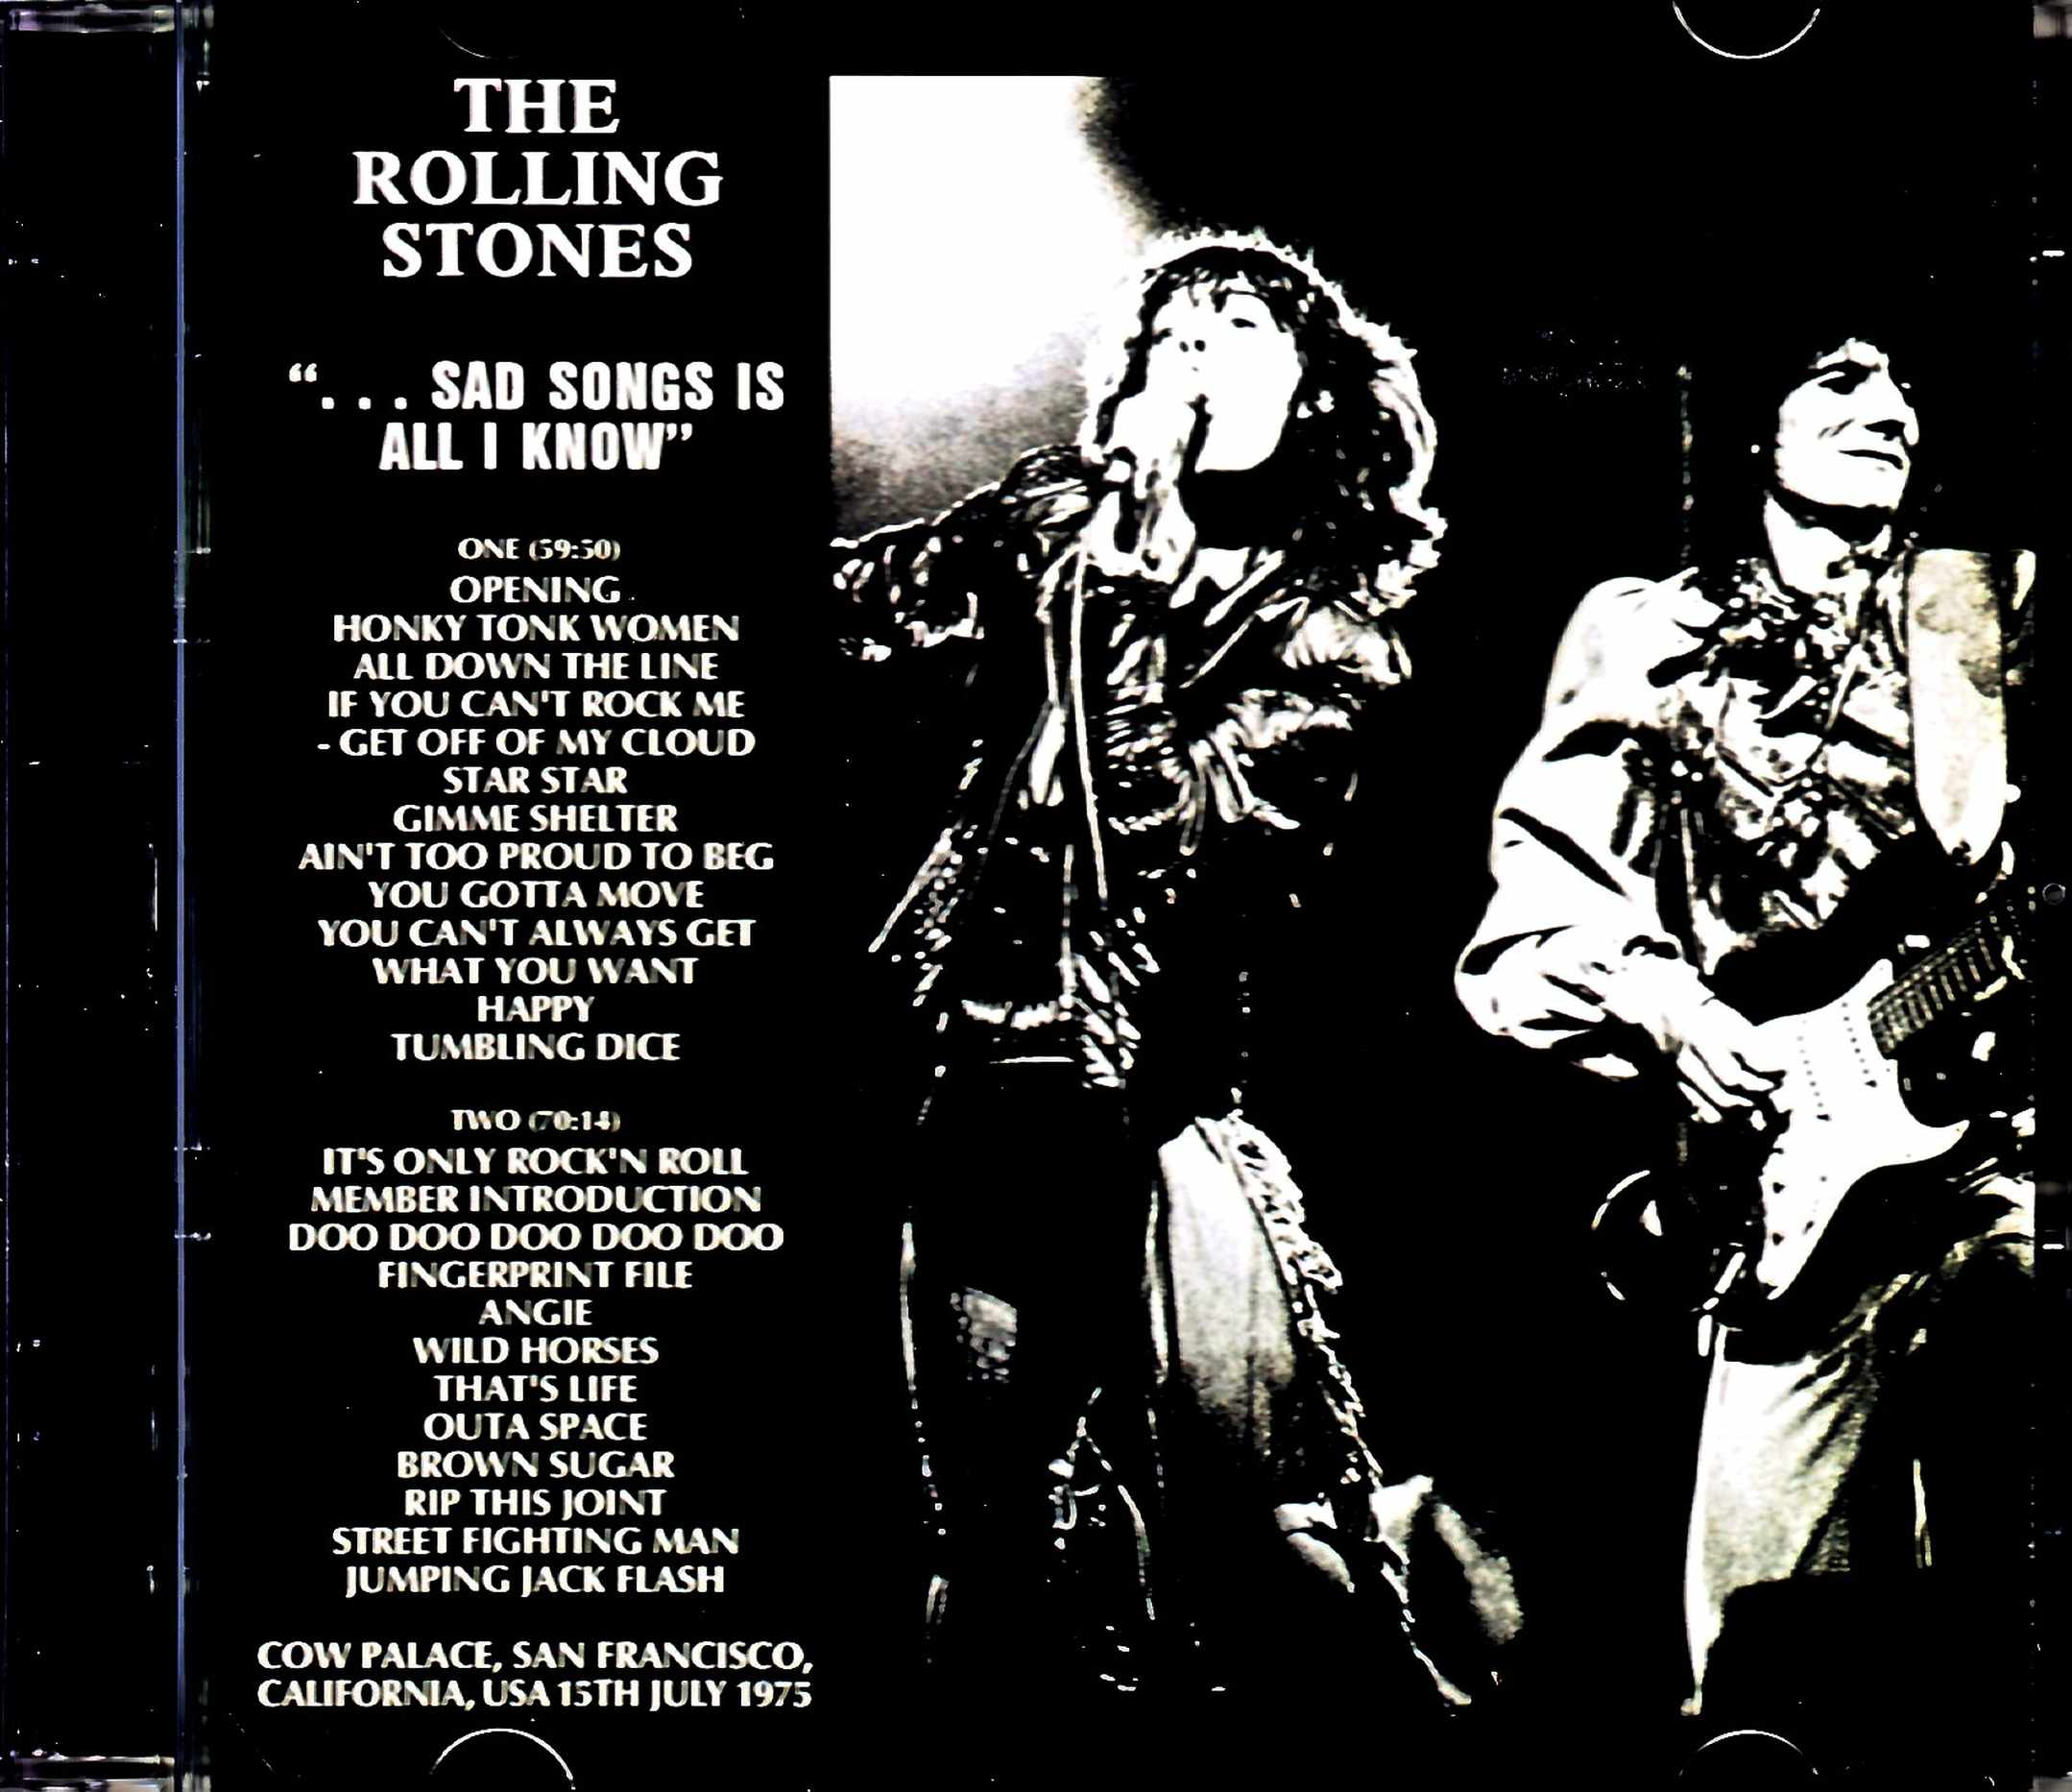 Rolling Stones ローリング・ストーンズ/CA,USA 7.15.1975 Complete Analogue 2LP Edition